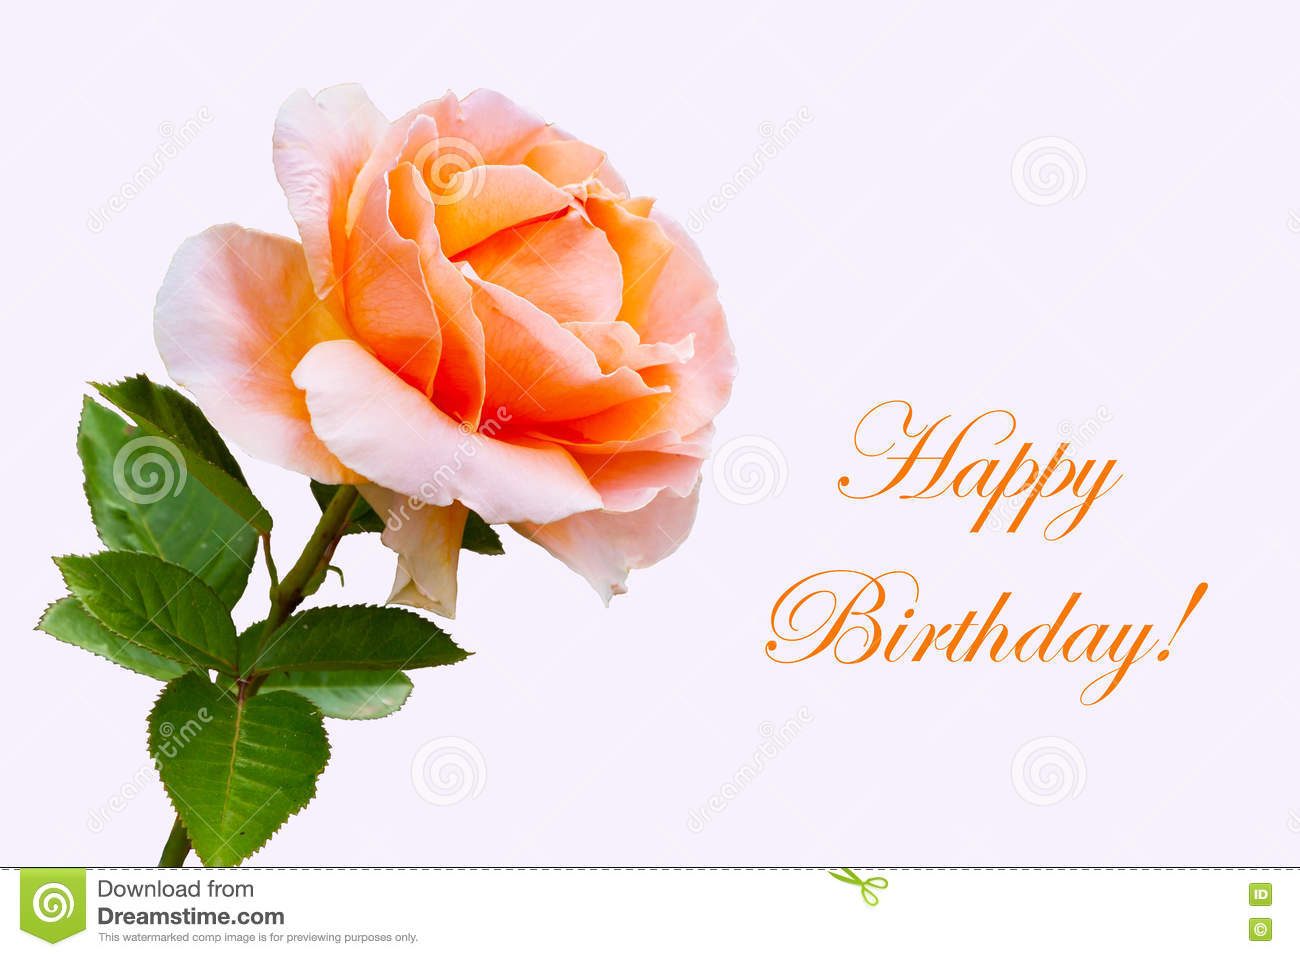 Close up beautiful rose flower happy birthday card stock image close up beautiful rose flower happy birthday card izmirmasajfo